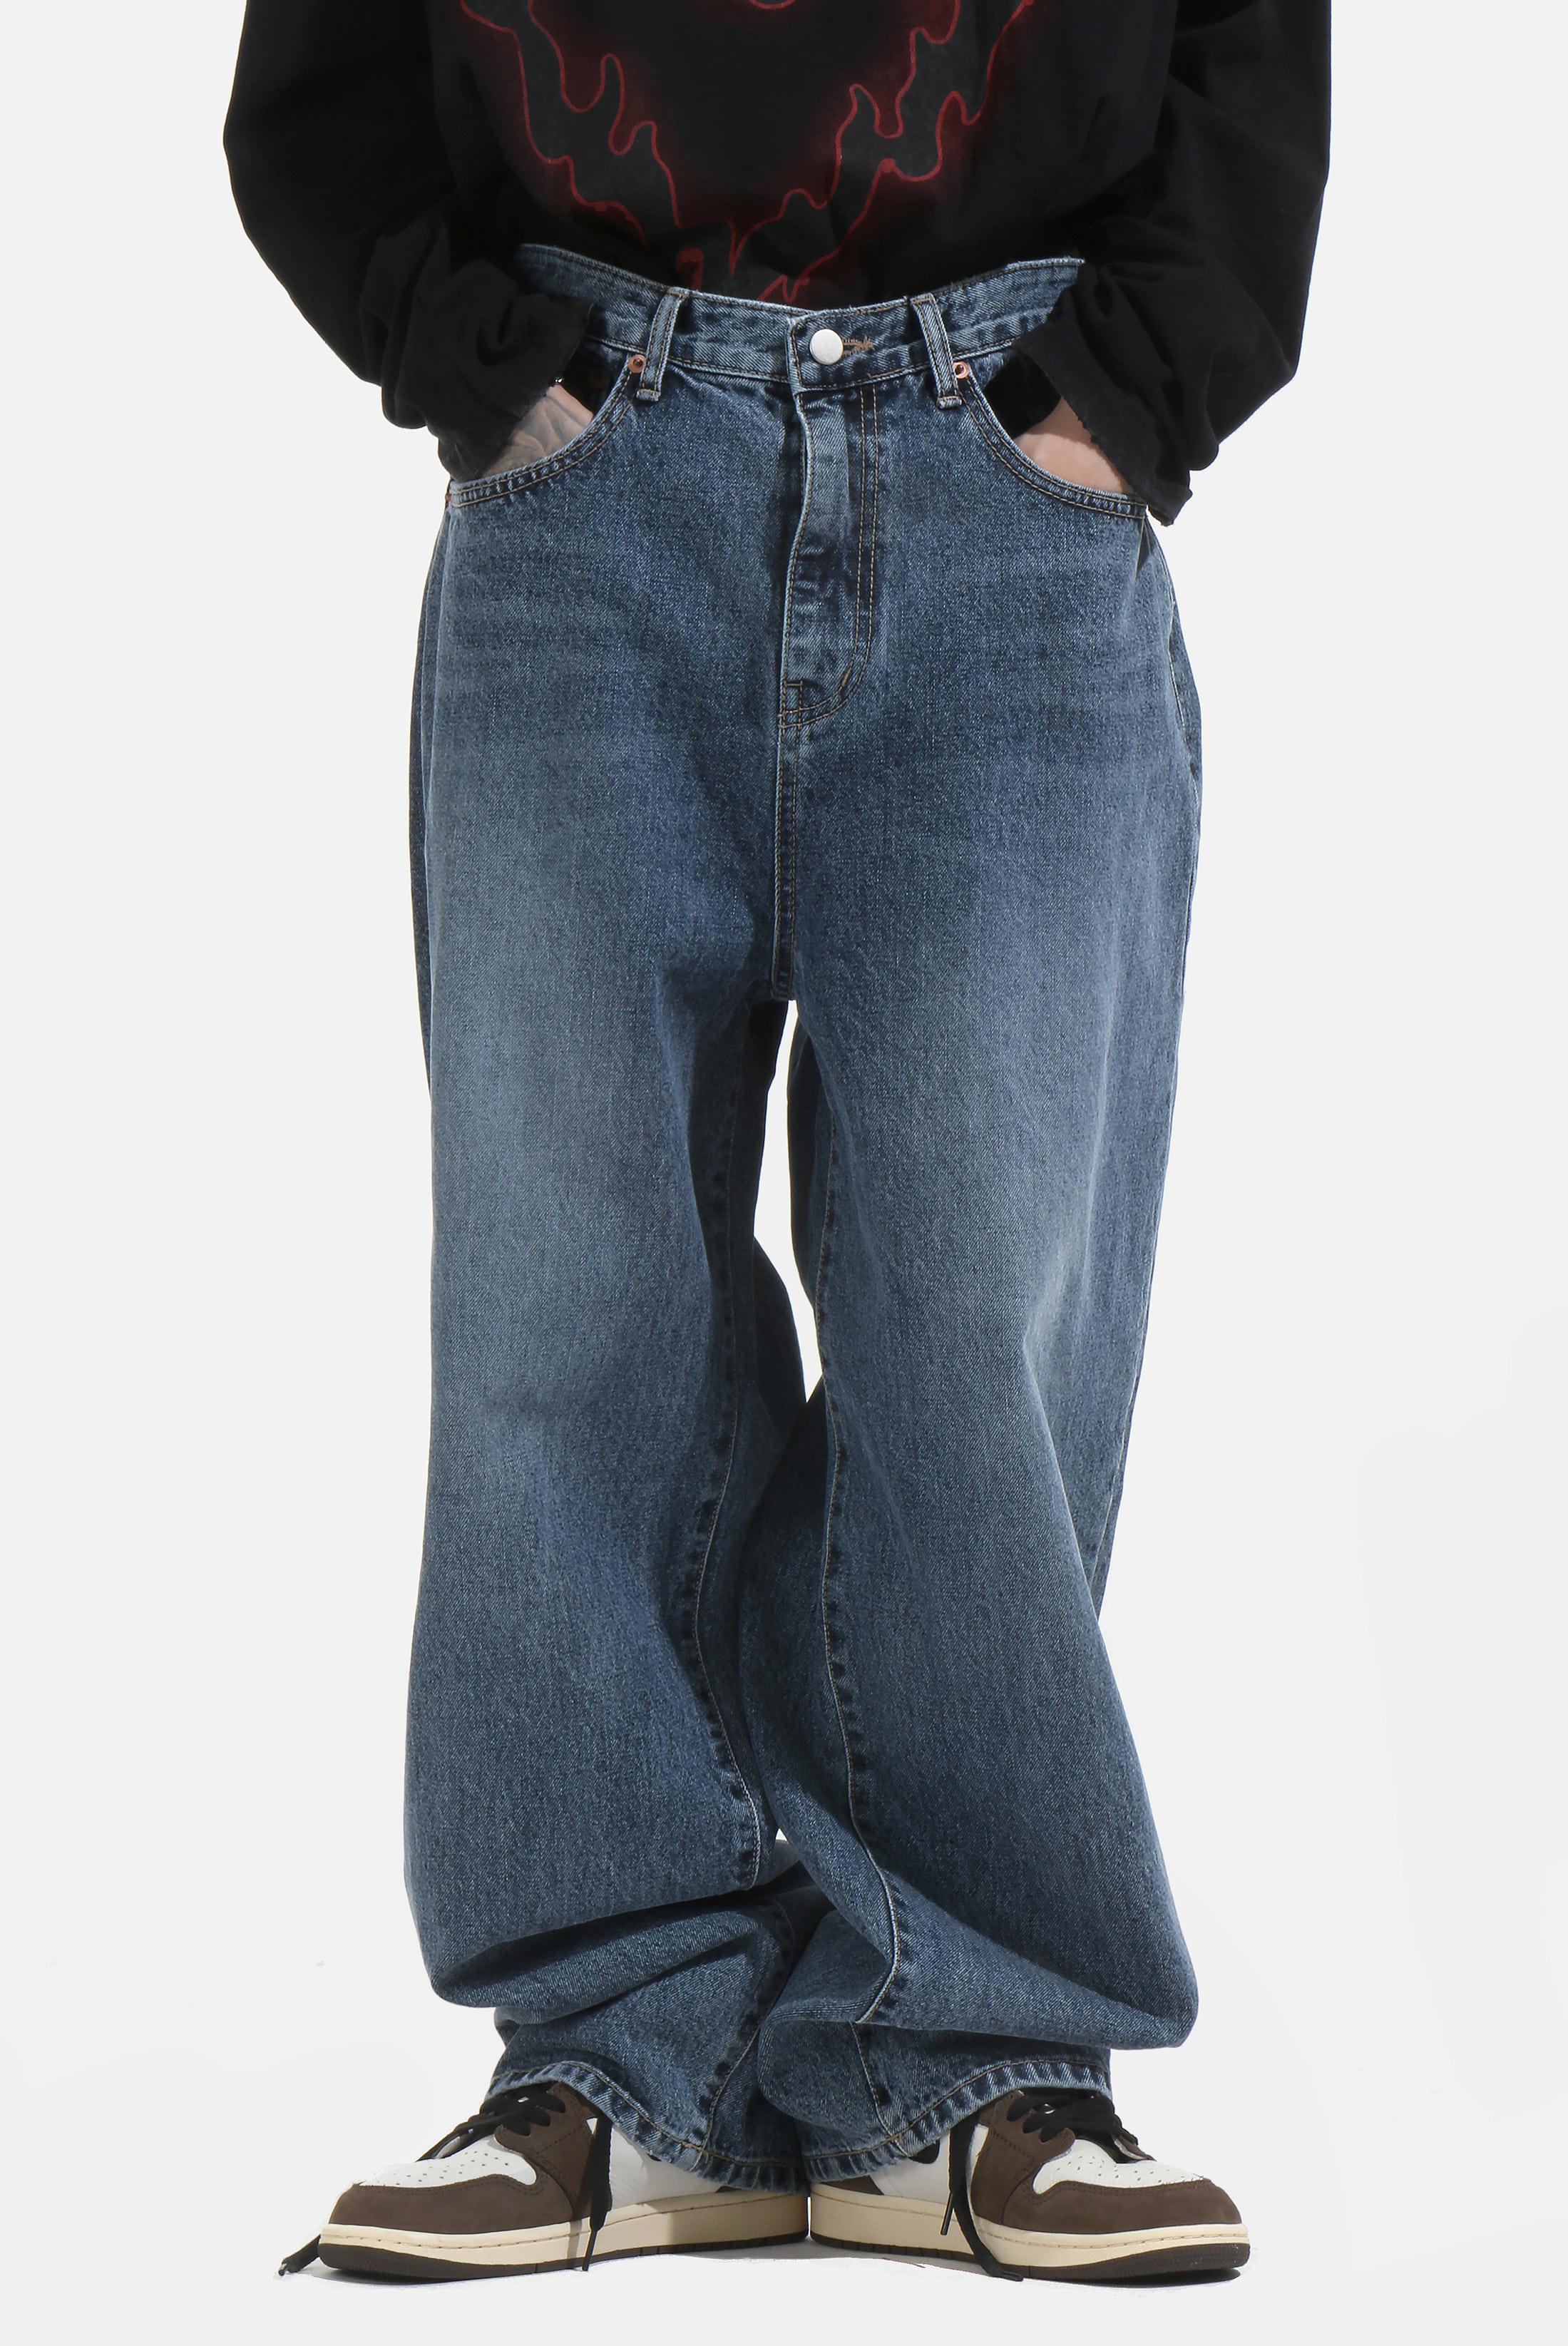 Slap_Over Wide Denim_Pants